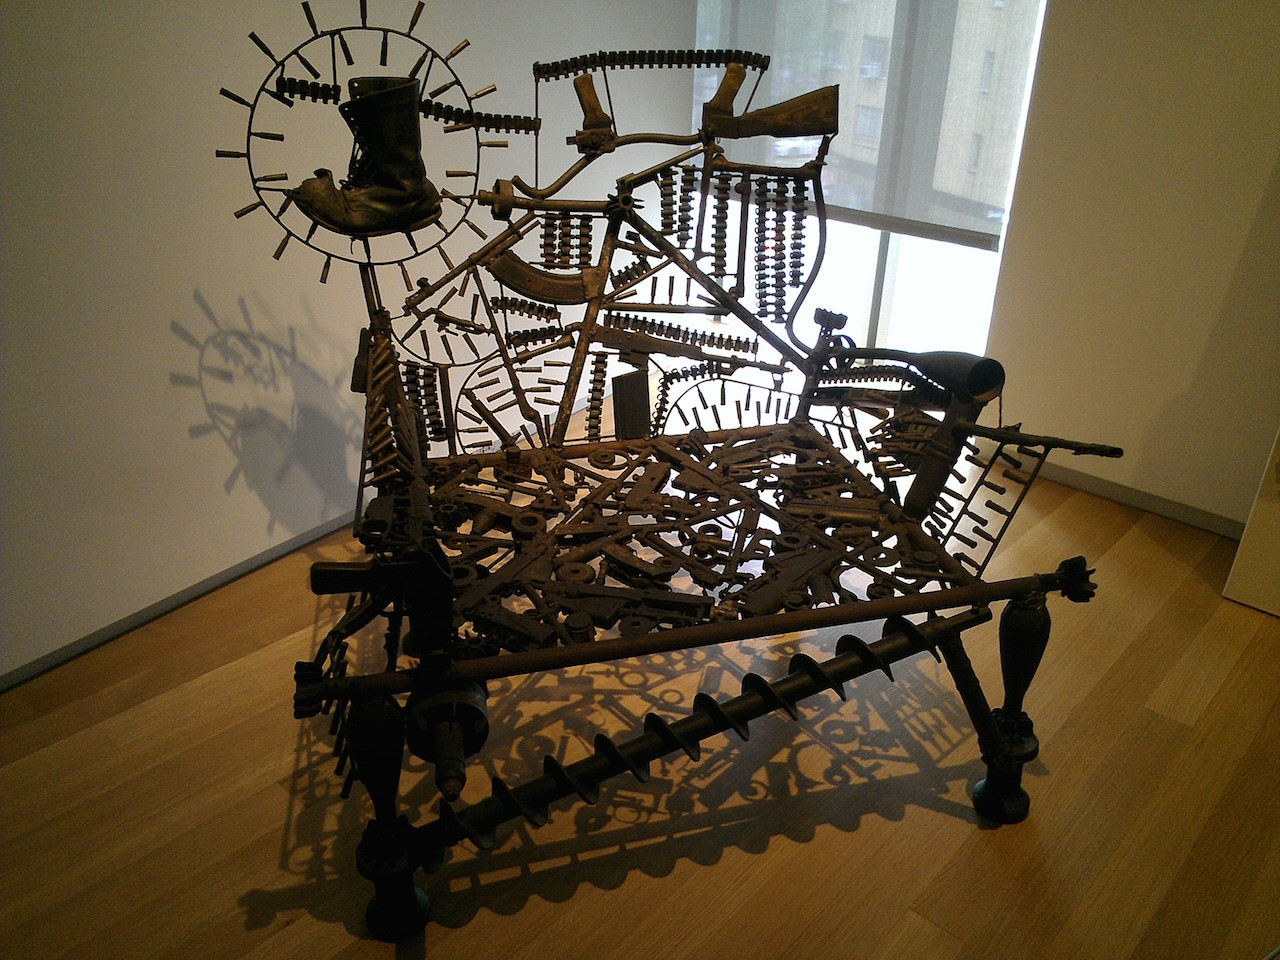 """Goncalo Mabunda's """"Hope Throne"""" (2008) at the Museum of Arts and Design (photo by Karen Green/Flickr) (click to enlarge)"""